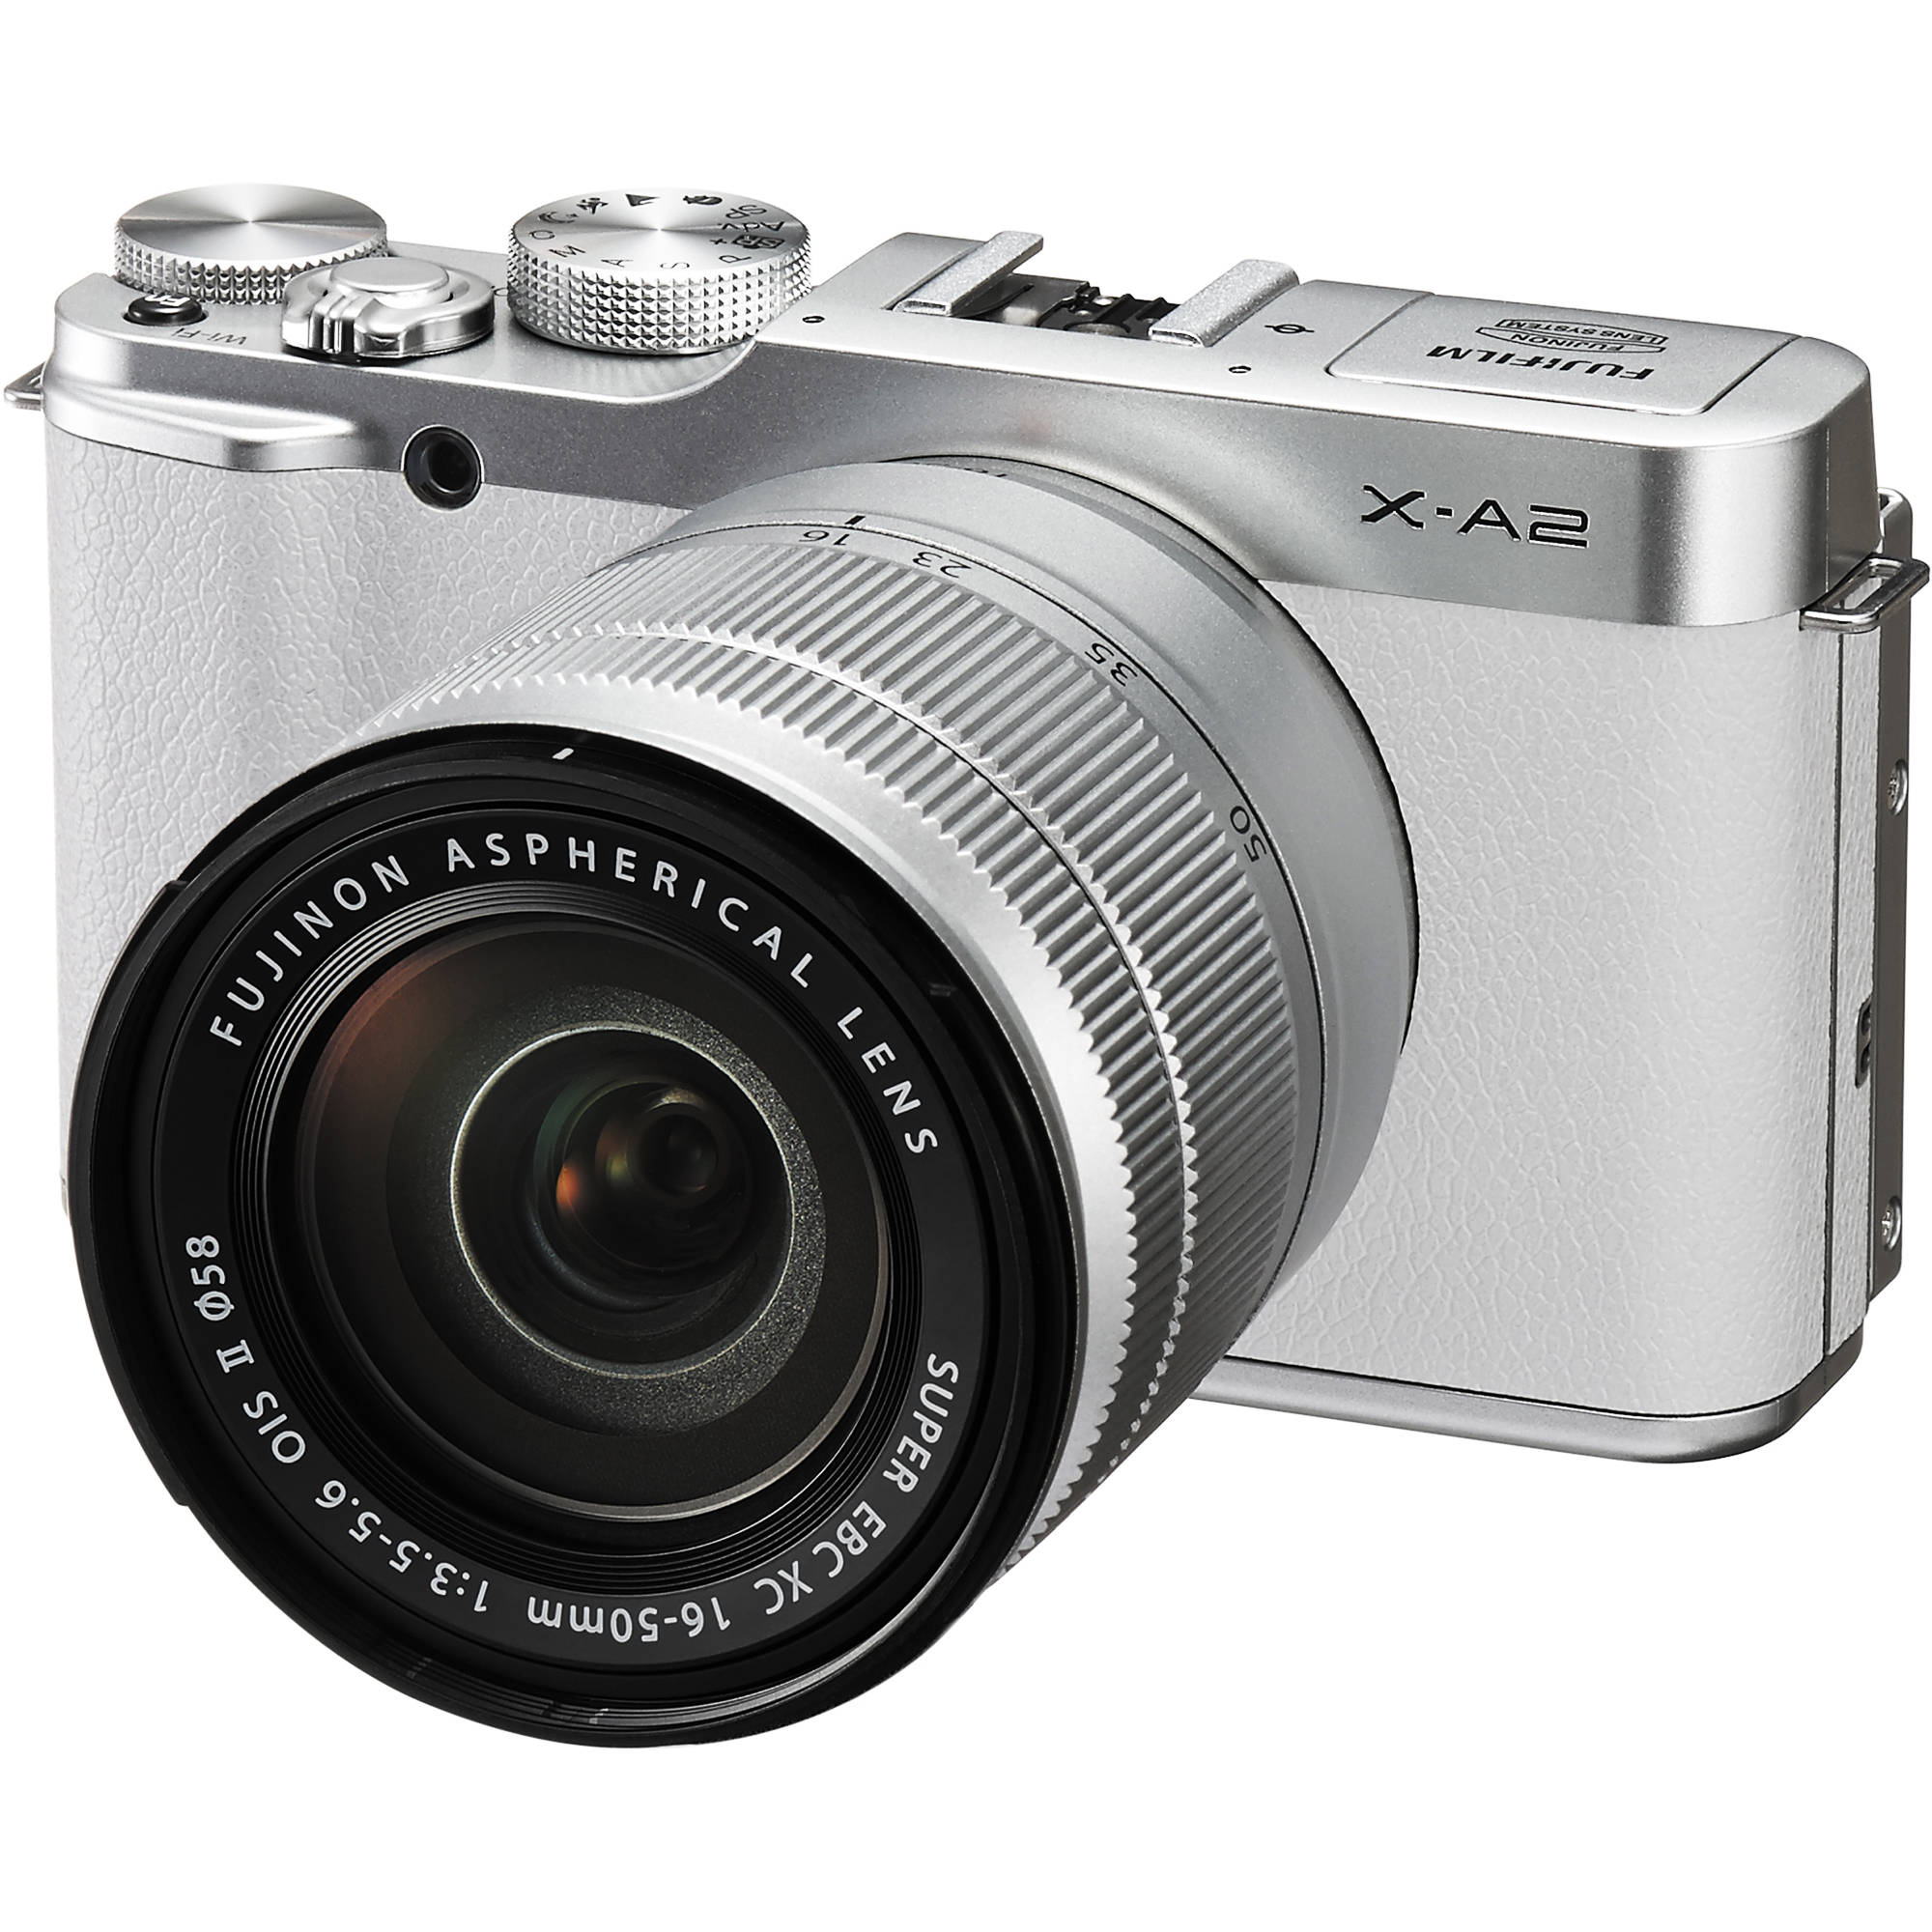 Fujifilm X A2 Mirrorless Digital Camera With 16 50mm 16455128 And Screen On Disposable Flash Circuit Schematic Lens White